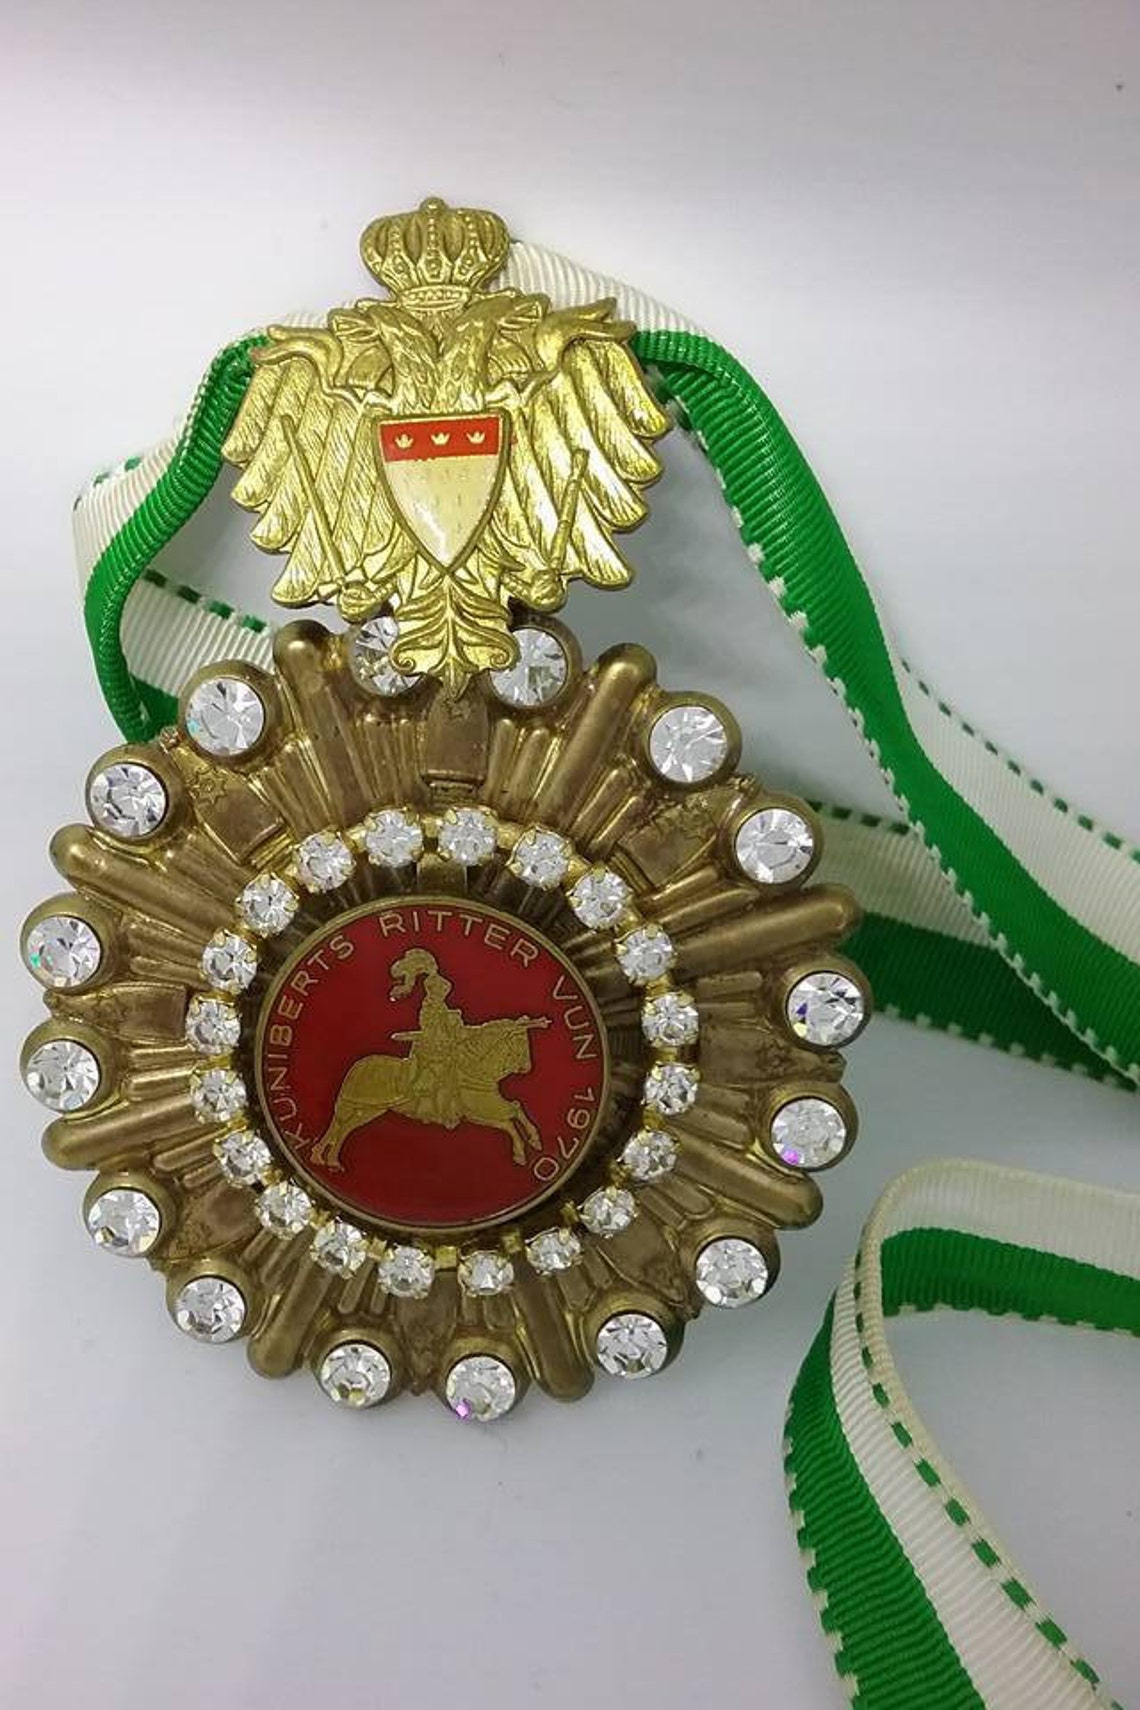 1970's German Carnival Medal, by Ritter, Cologne